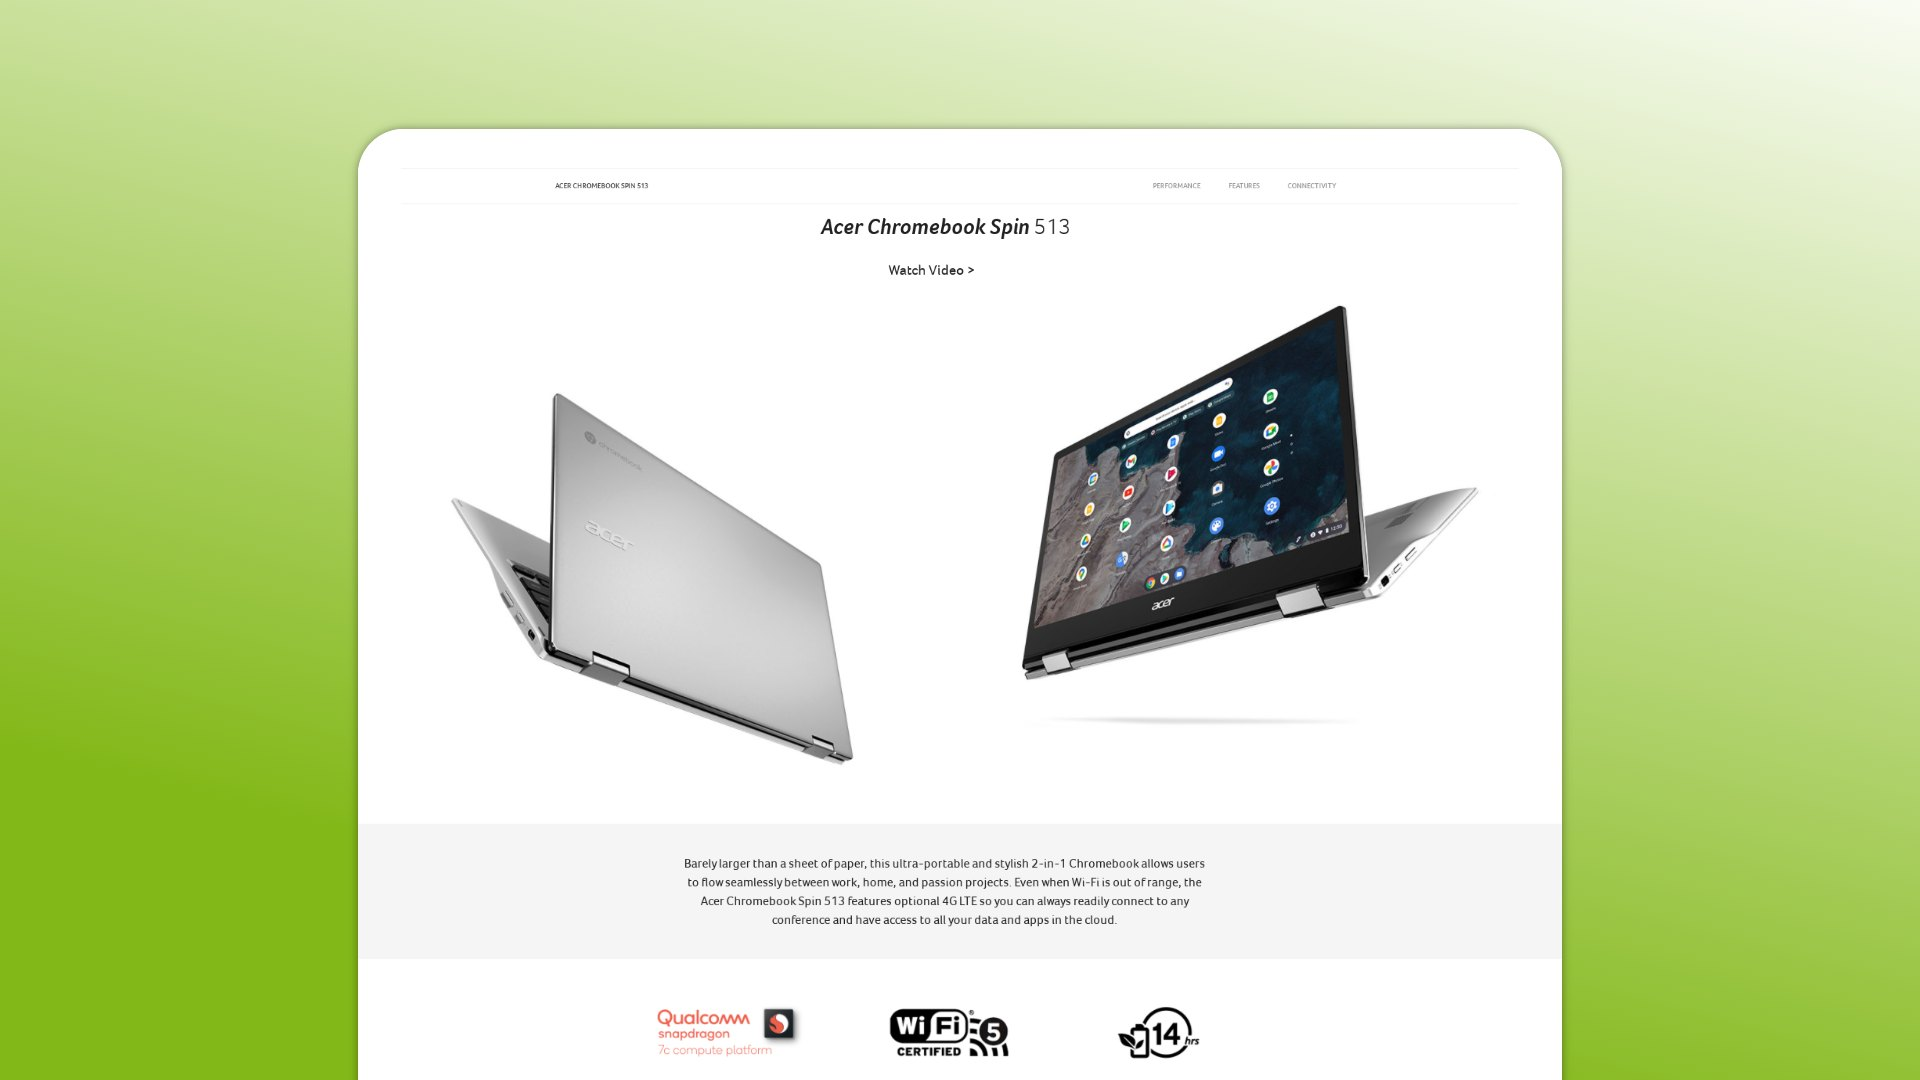 The Snapdragon 7c Acer Chromebook Spin 513 gets U.S. landing page, inches closer to release